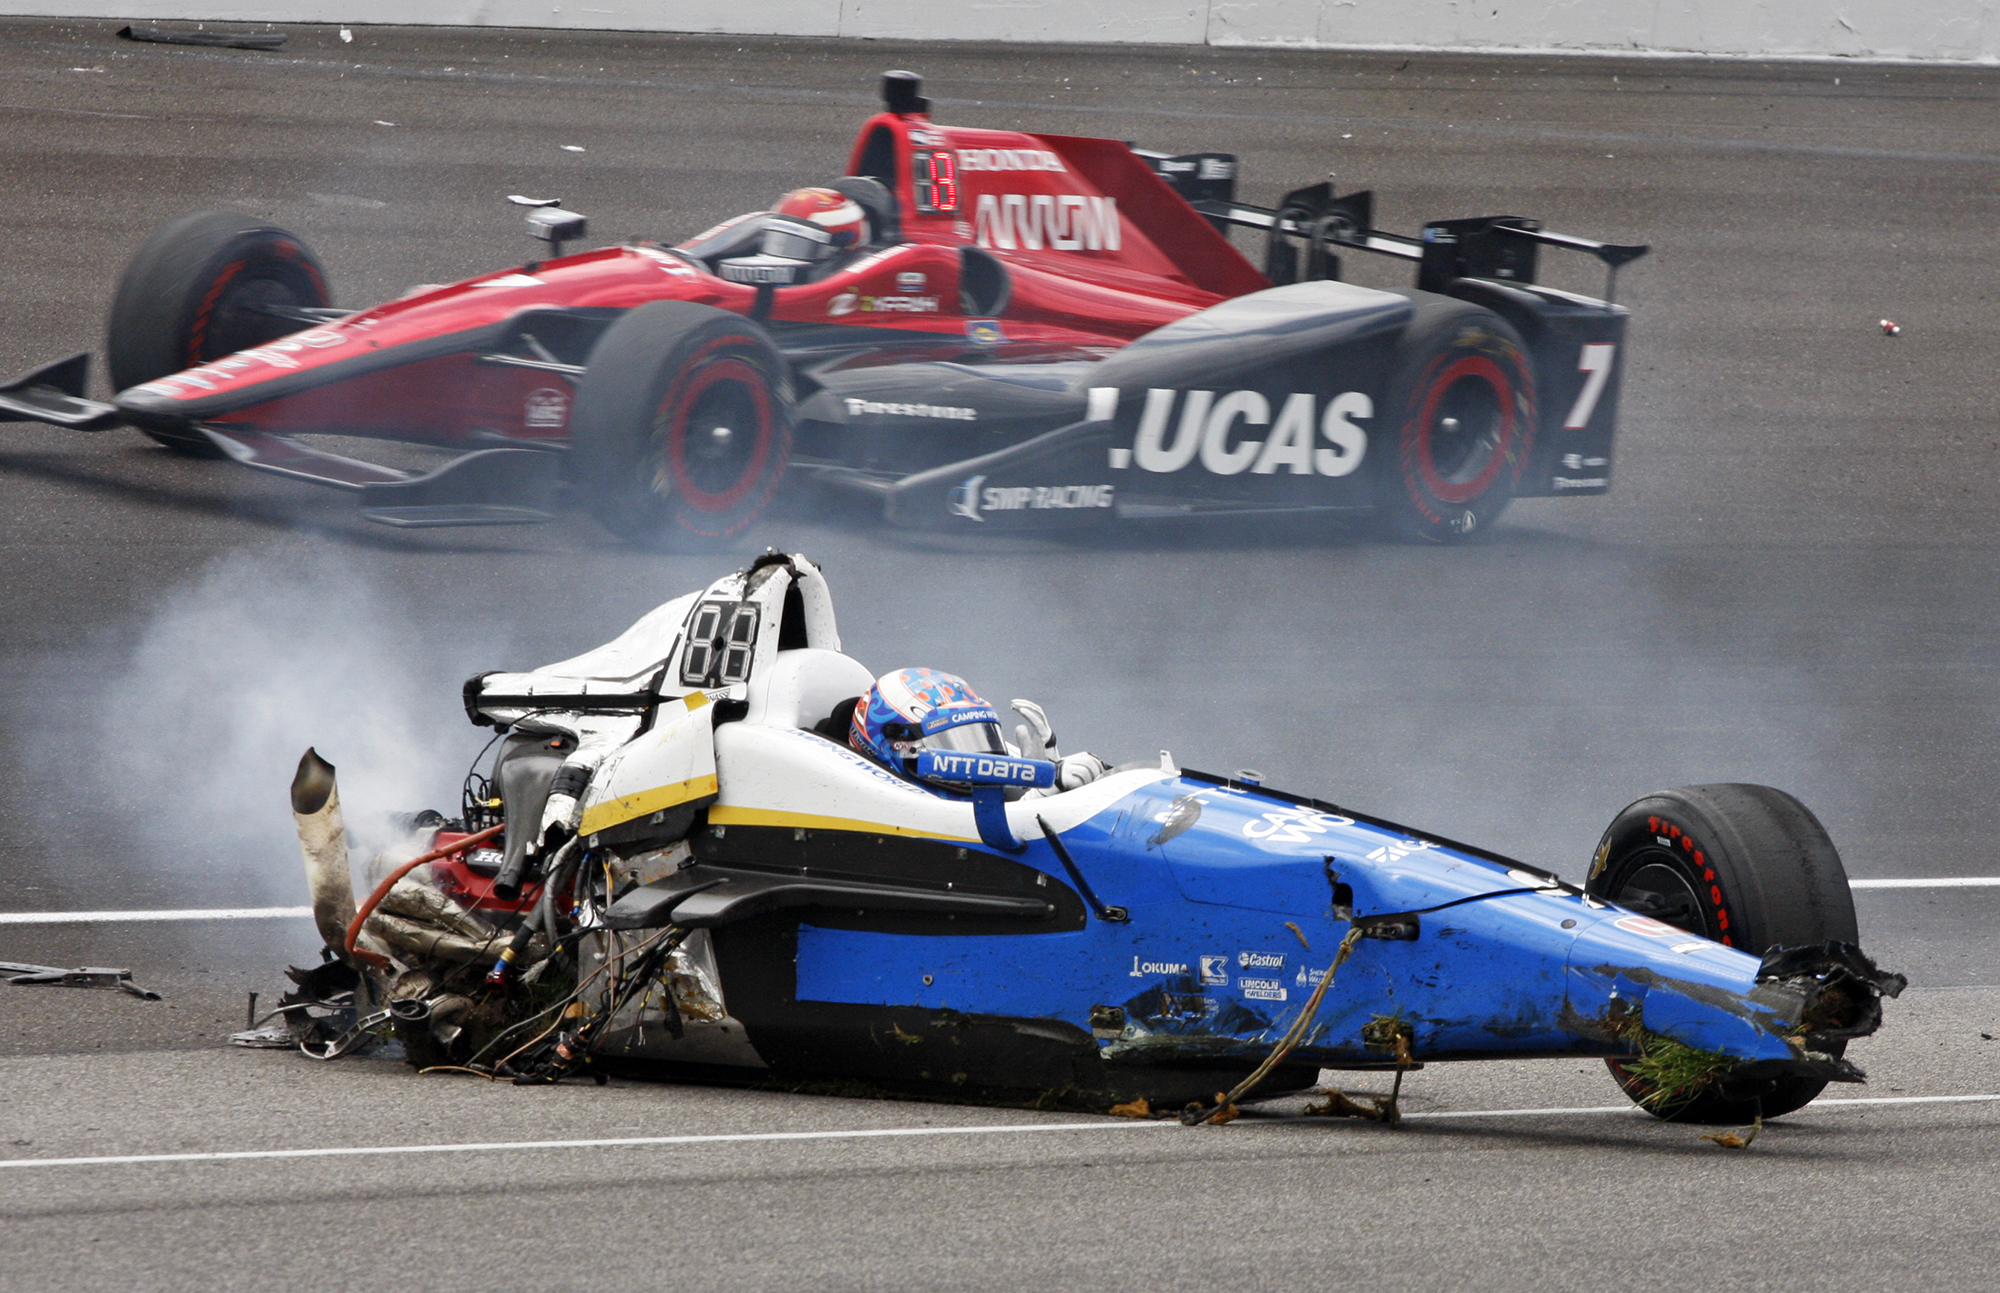 Scott Dixon, of New Zealand, sits in the remains of his car after going airborne in a crash during the running of the Indianapolis 500 auto race at Indianapolis Motor Speedway, on May 28, 2017, in Indianapolis.